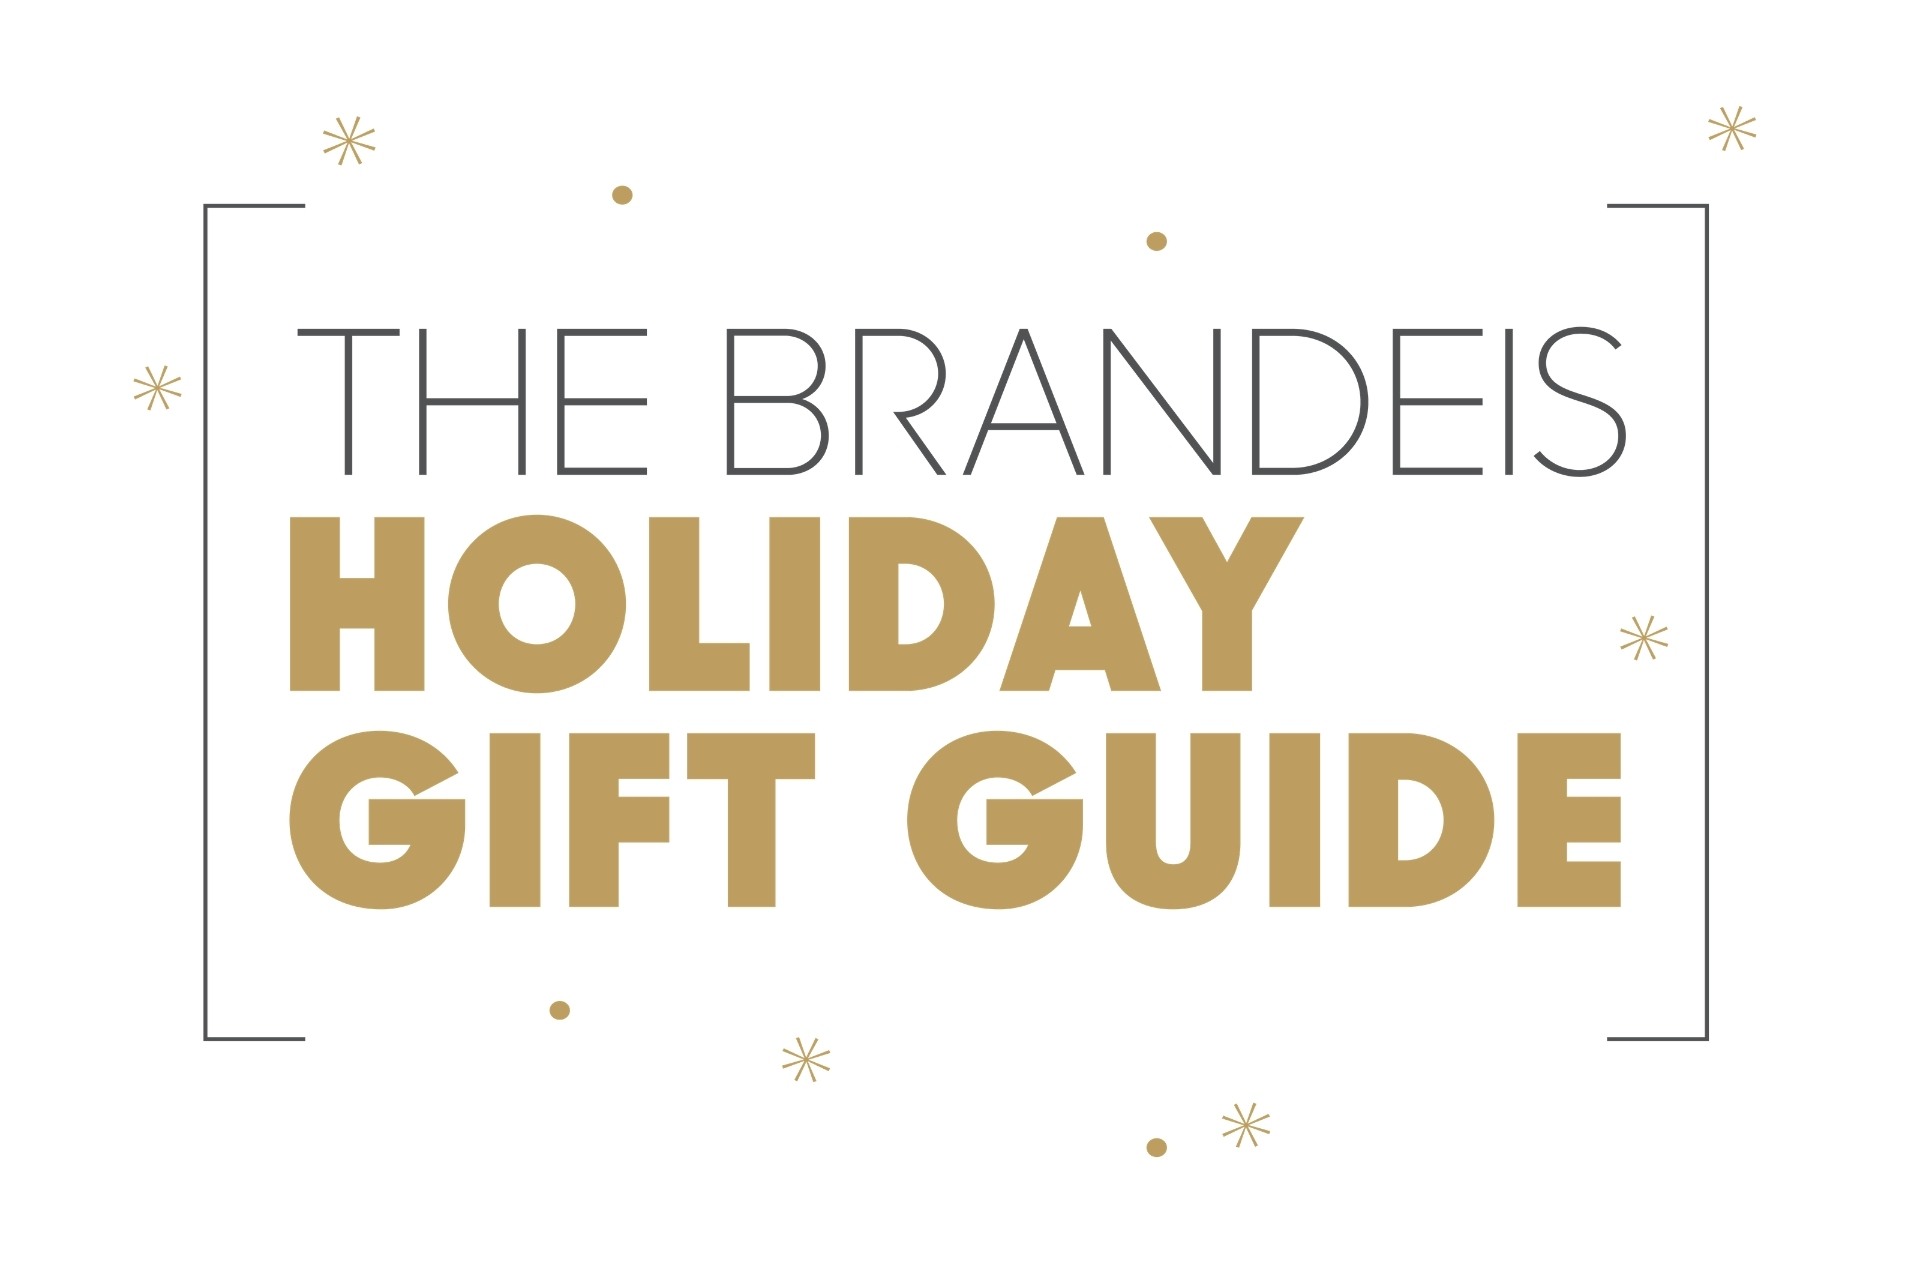 graphic says The Brandeis Holiday Gift Guide